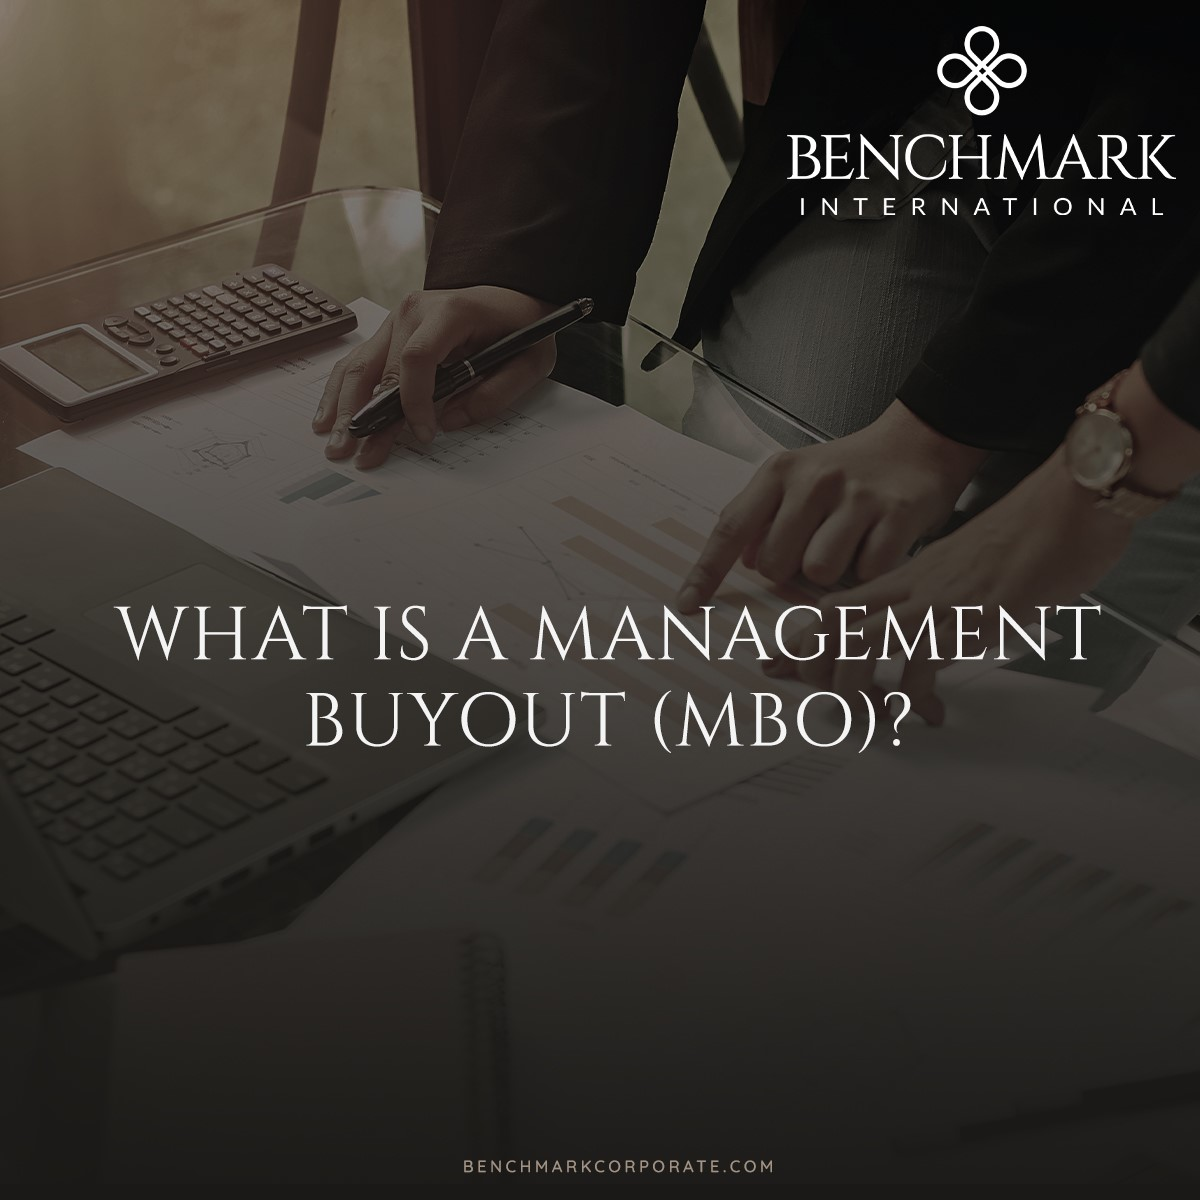 What is a Management Buyout (MBO)?